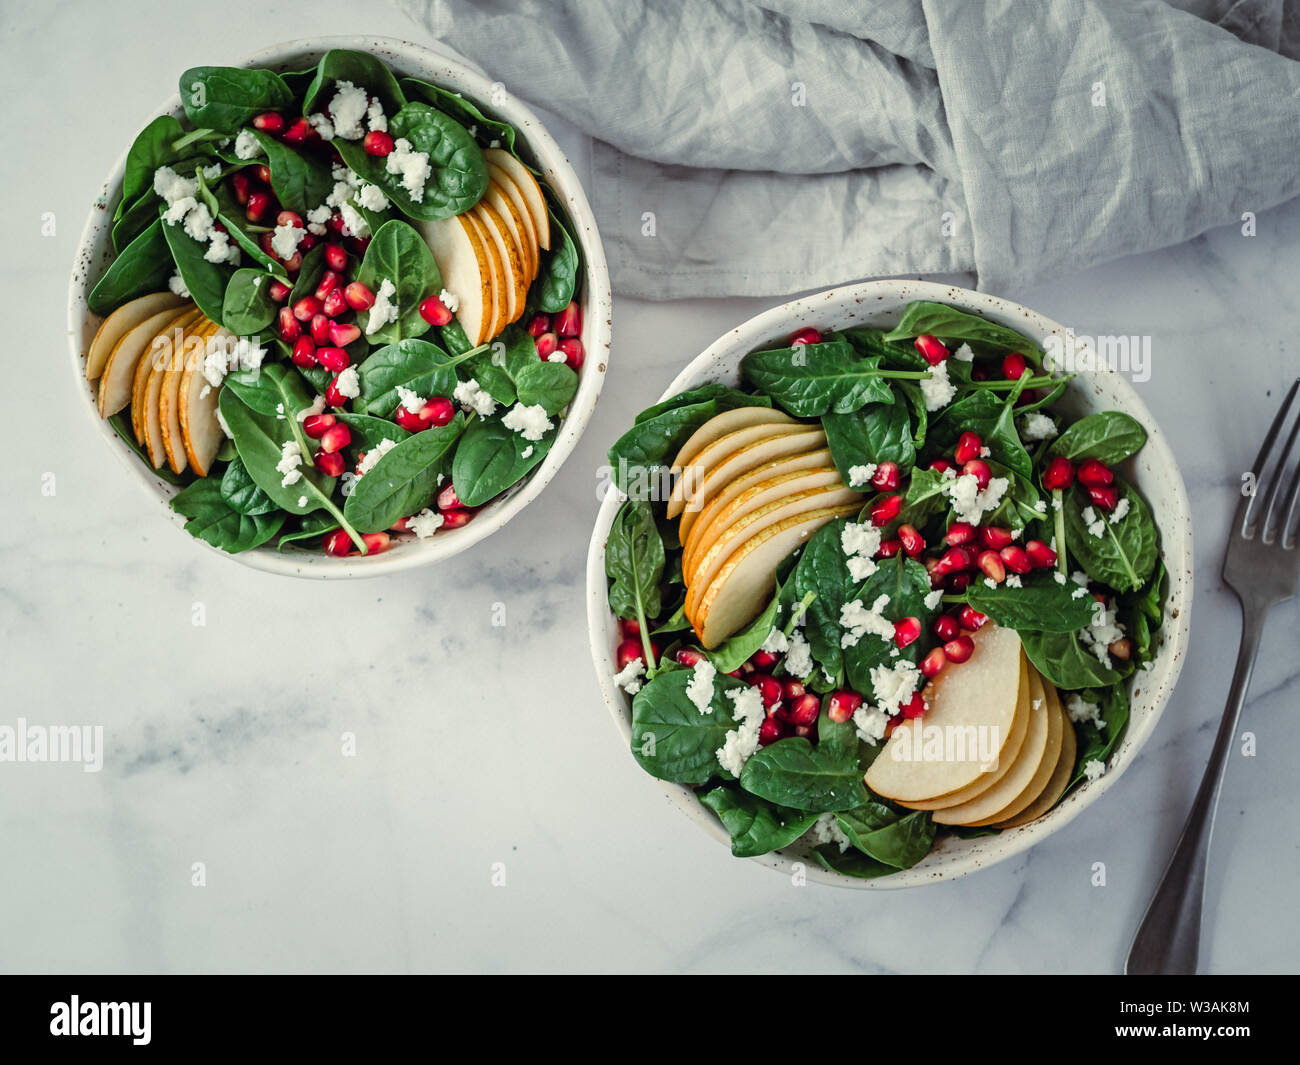 Fresh Salad With Baby Spinach Pear Pomegranate And Cottage Cheese Two Bowls With Delicious Summer Fruit Salad On Marble Table Copy Space For Text Ideas And Recipes For Healthy Breakfast Or Lunch